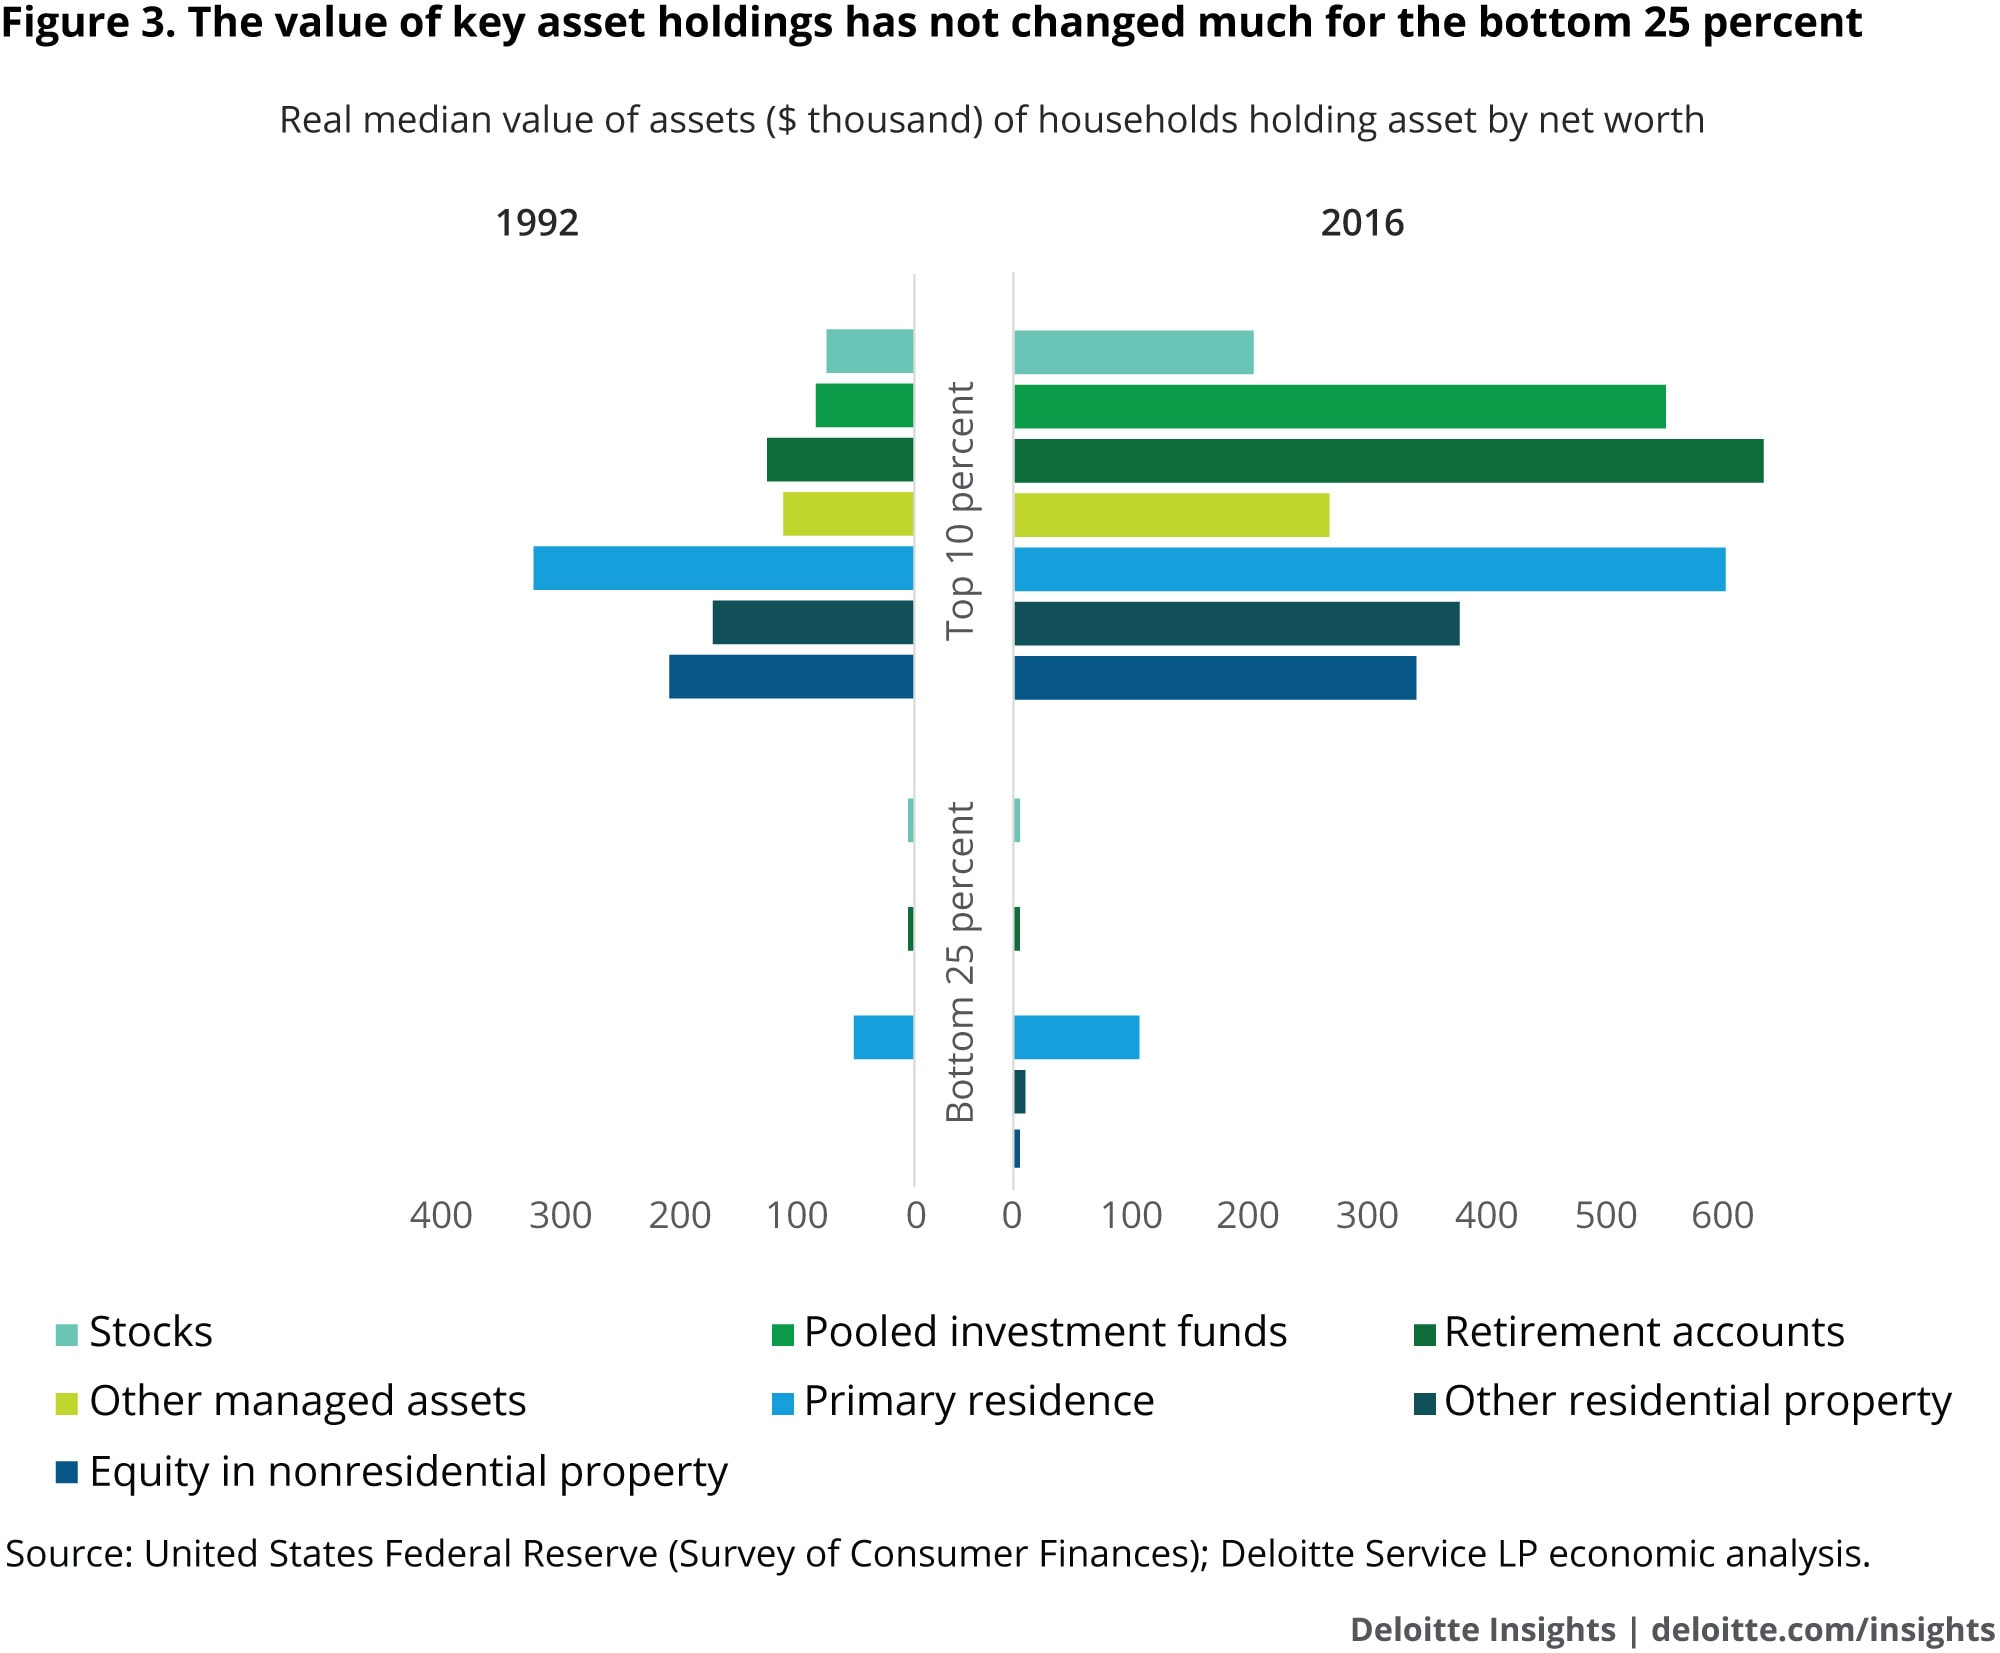 The value of key asset holdings has not changed much for the bottom 25 percent